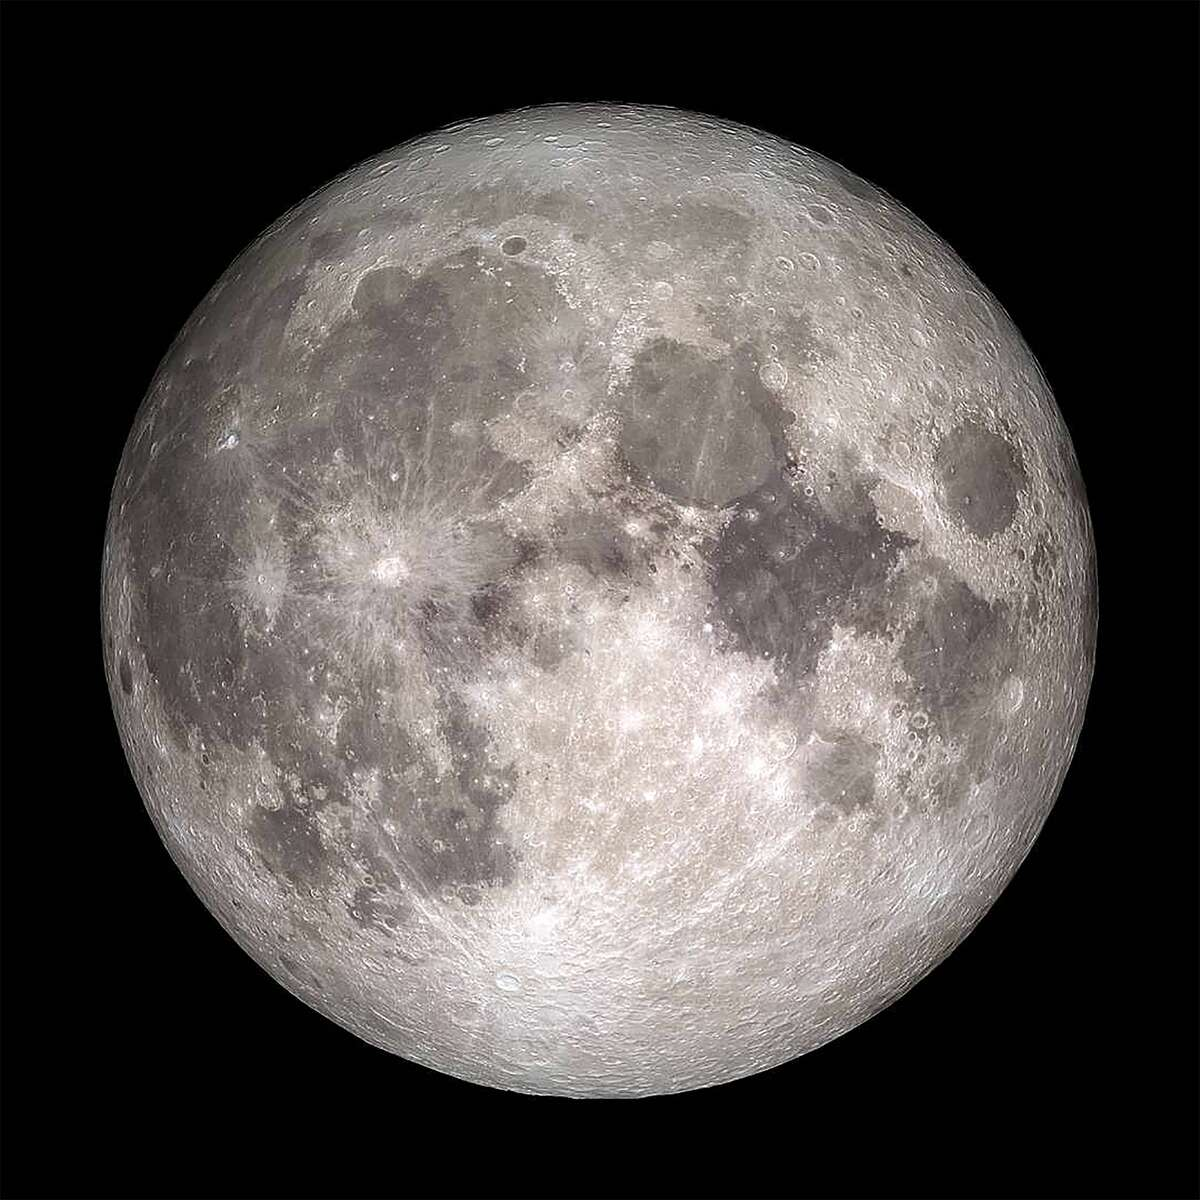 The tech will help bring old technology back to the lunar surface.